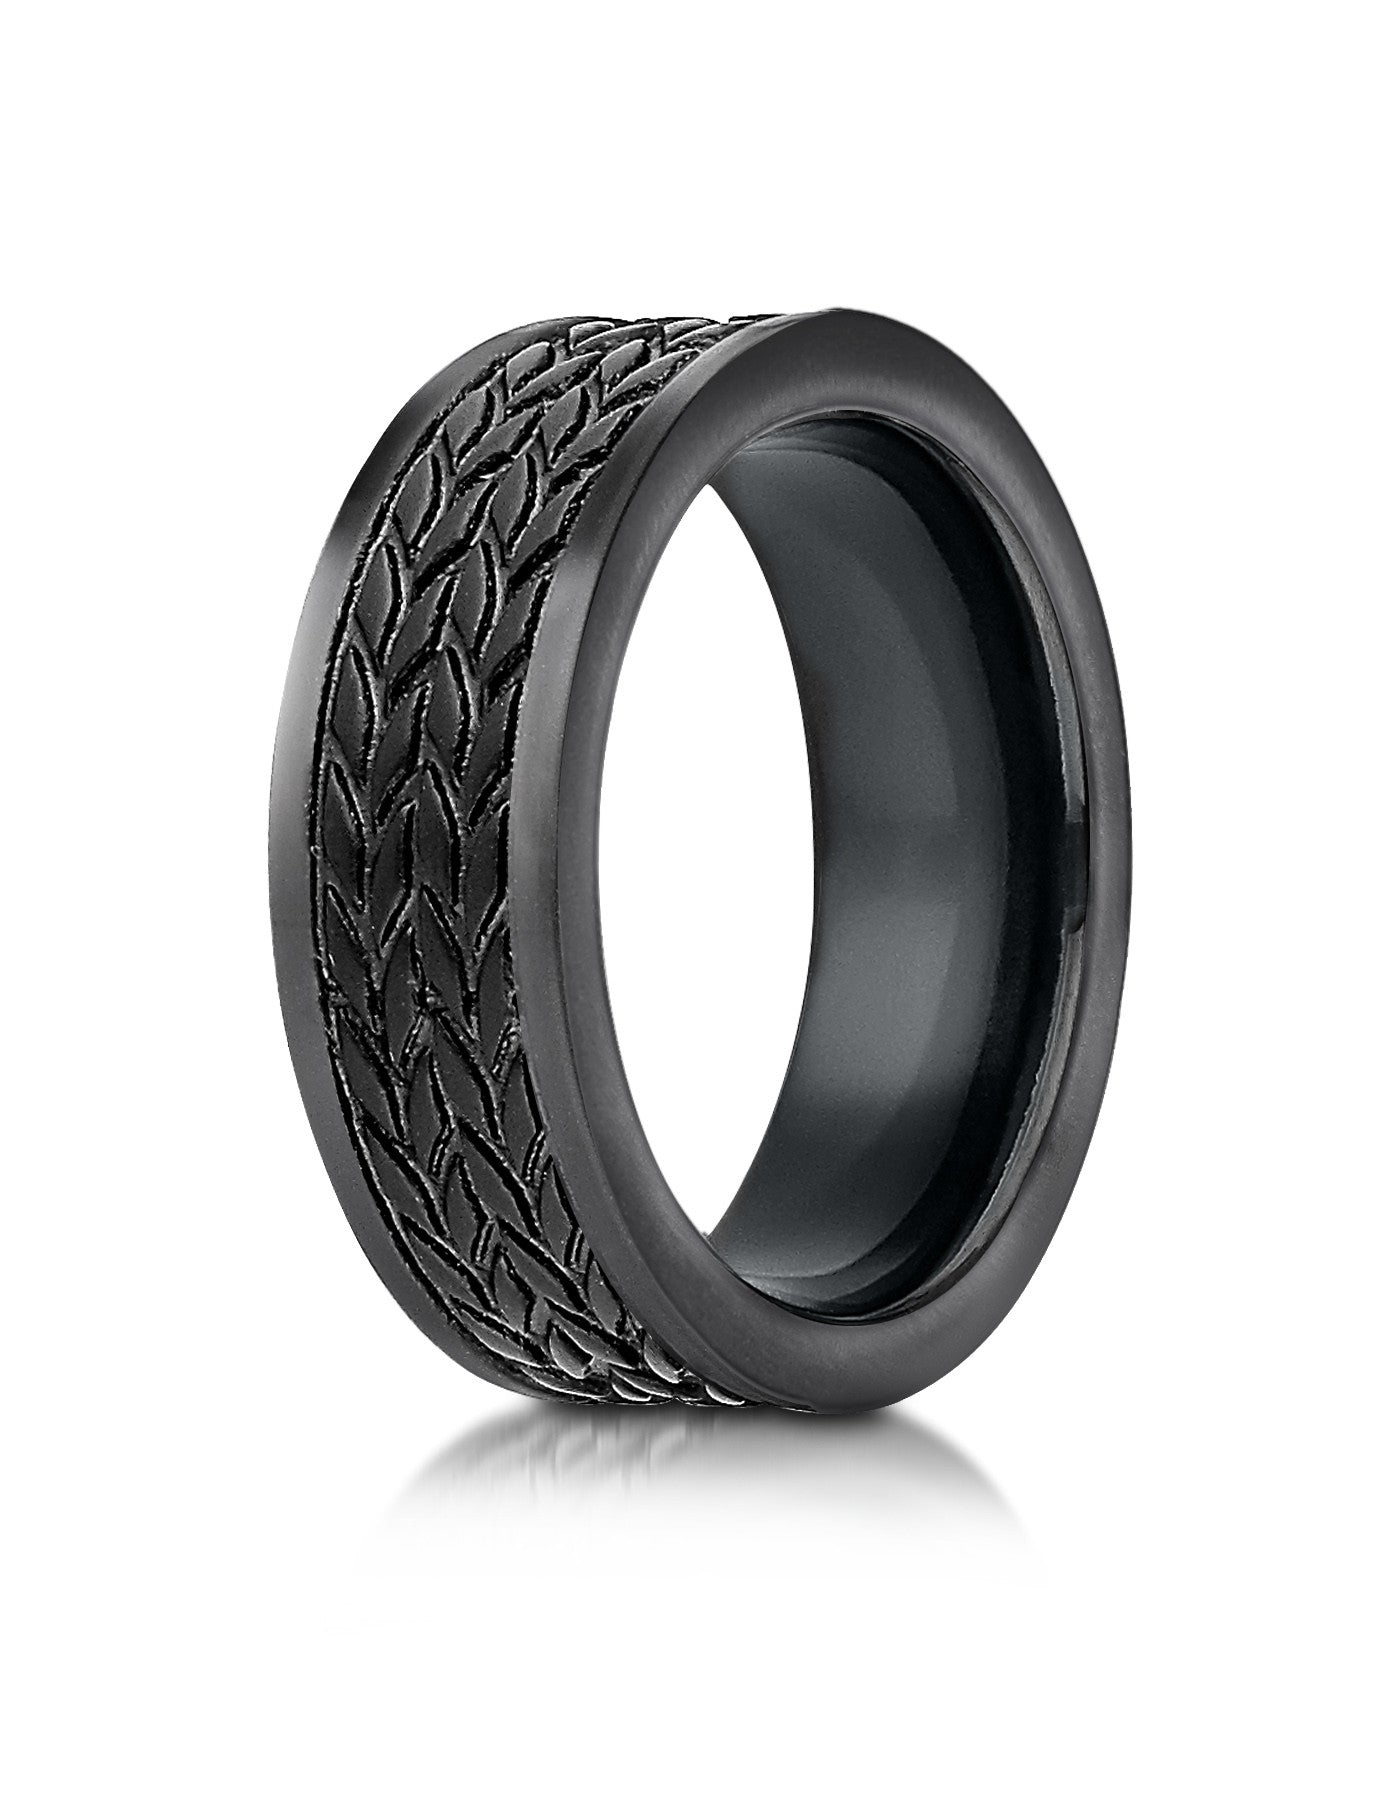 CAPRI Black Cobalt Wedding Band For Men With Tire Tread Pattern